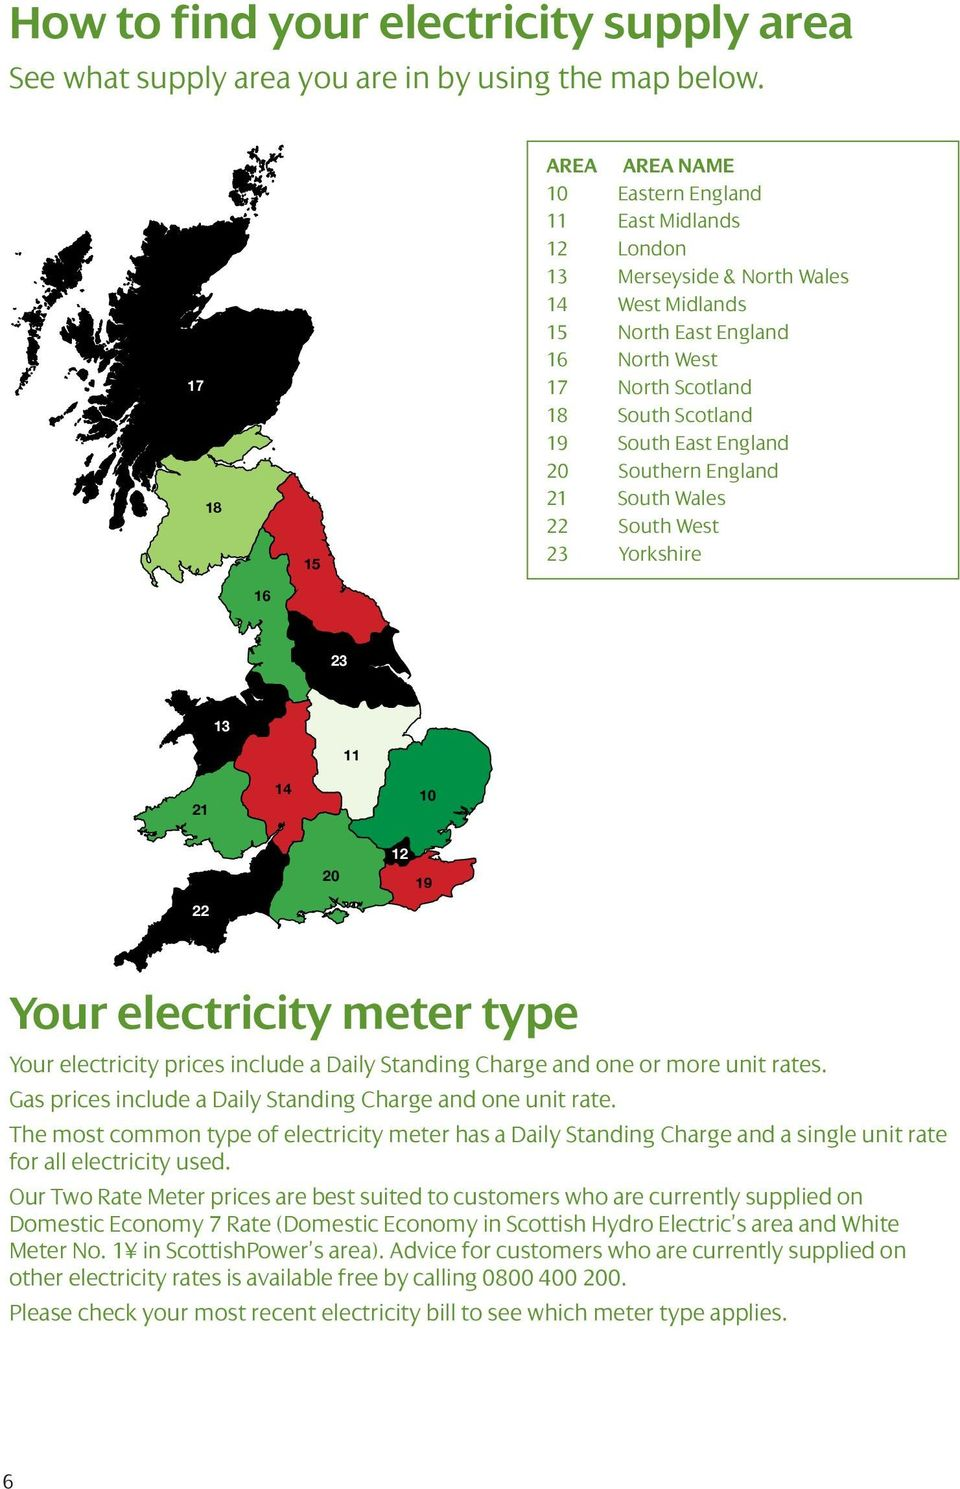 East England 20 Southern England 21 South Wales 22 South West 23 Yorkshire 16 23 13 11 21 14 10 22 20 12 19 Your electricity meter type Your electricity prices include a Daily Standing Charge and one